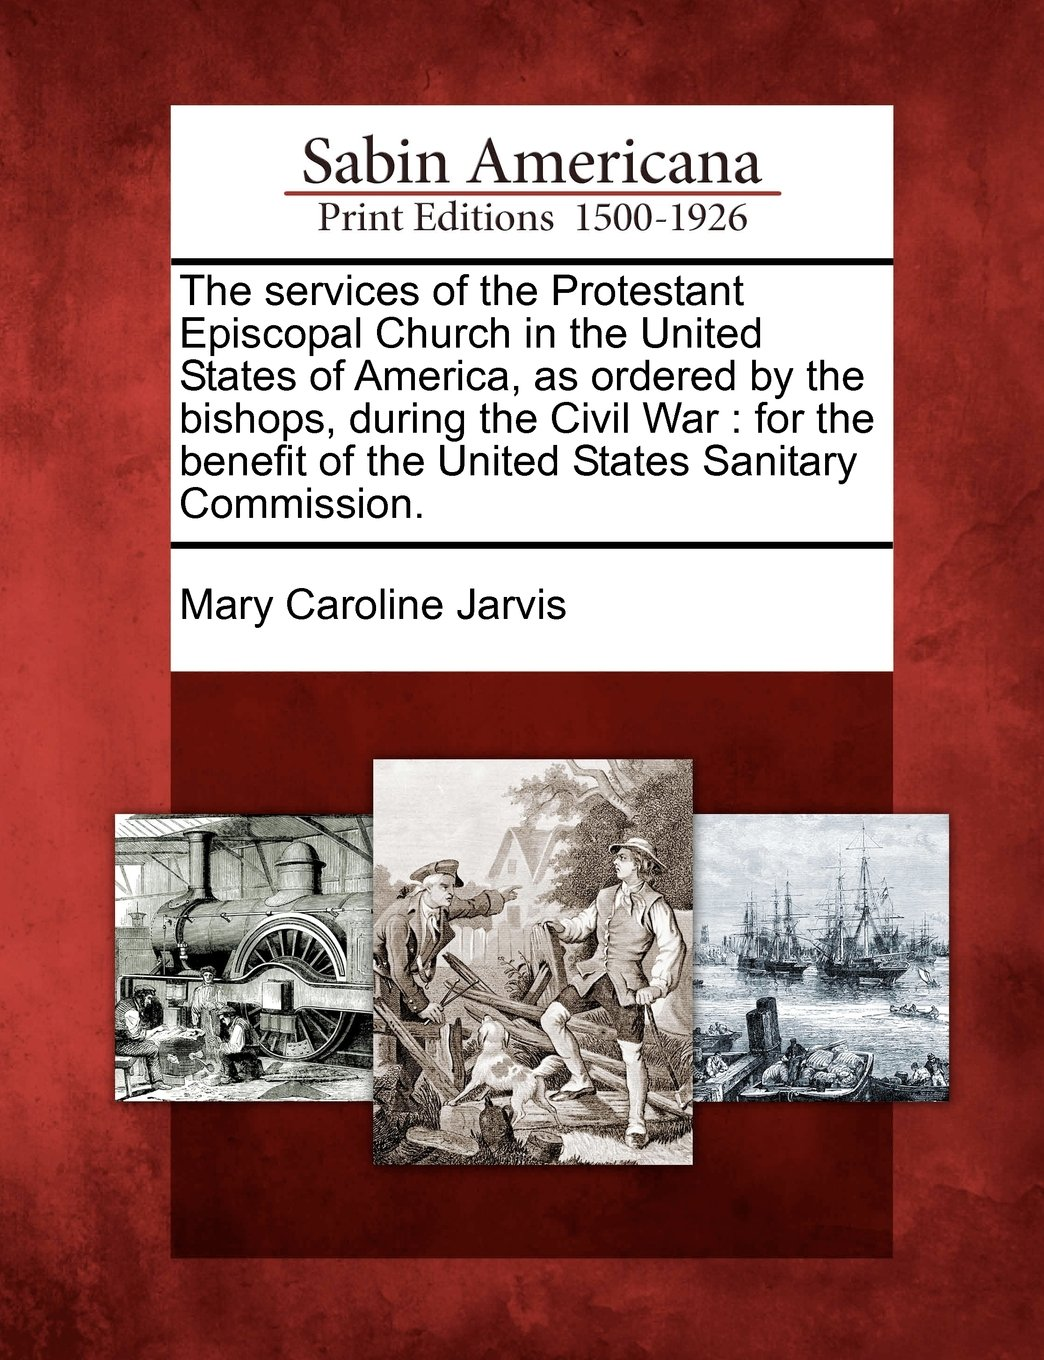 The services of the Protestant Episcopal Church in the United States of America, as ordered by the bishops, during the Civil War: for the benefit of the United States Sanitary Commission. ebook